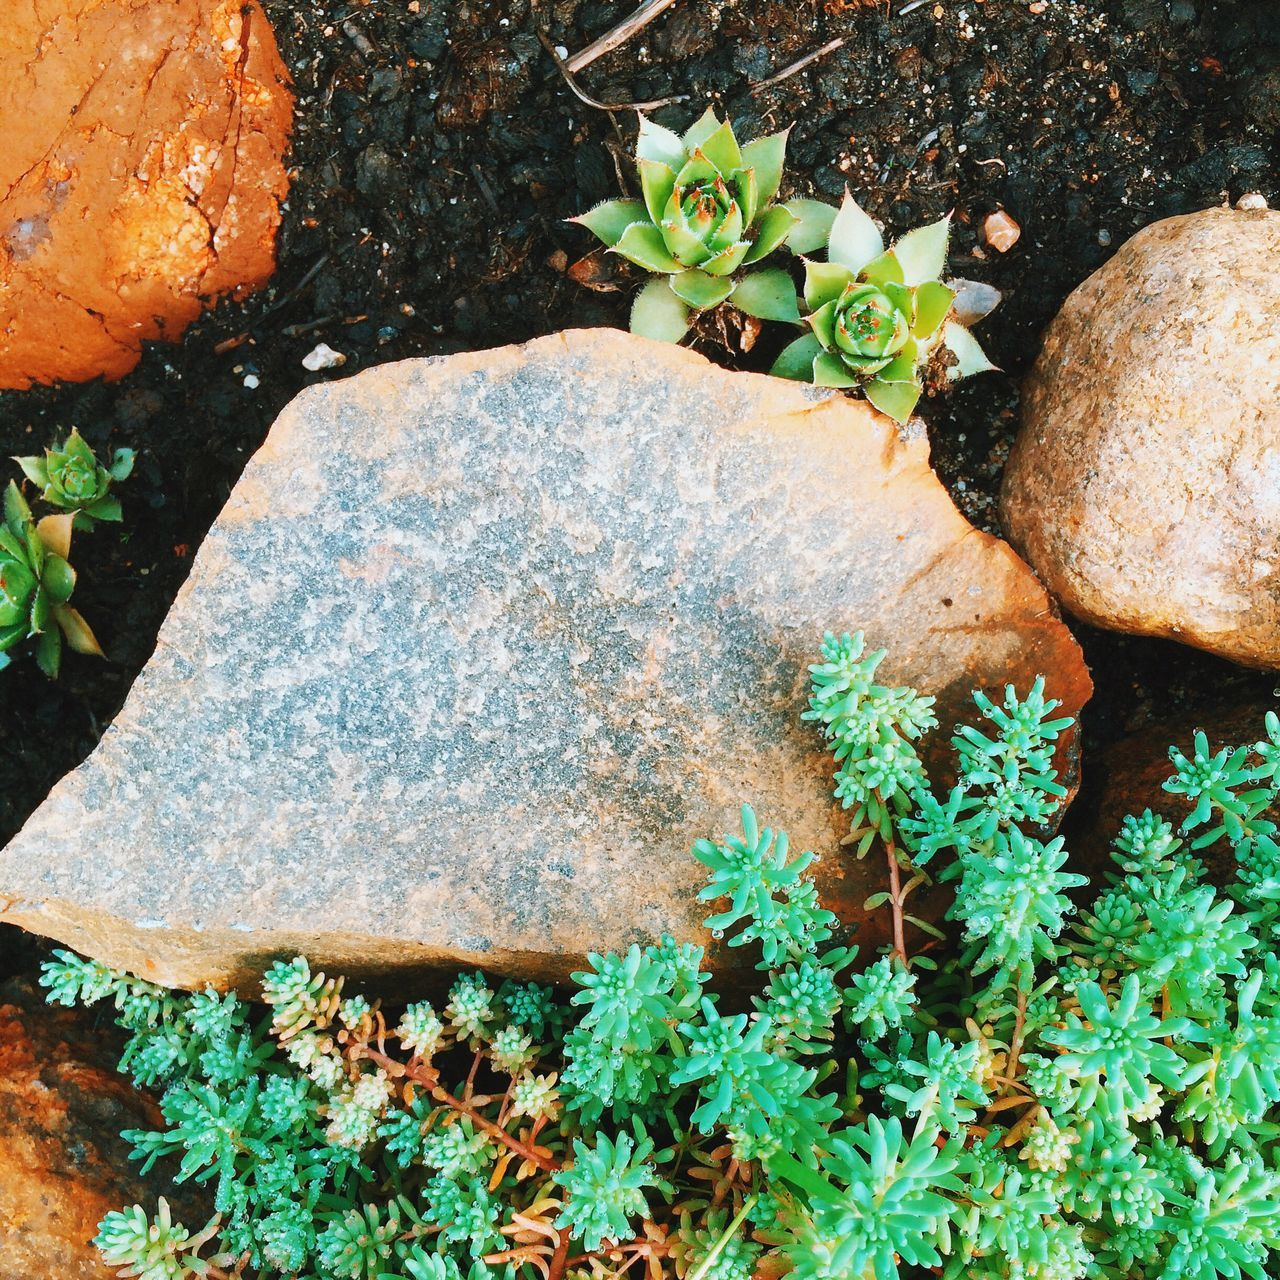 leaf, plant, nature, high angle view, rock - object, growth, outdoors, flower, no people, day, freshness, beauty in nature, close-up, fragility